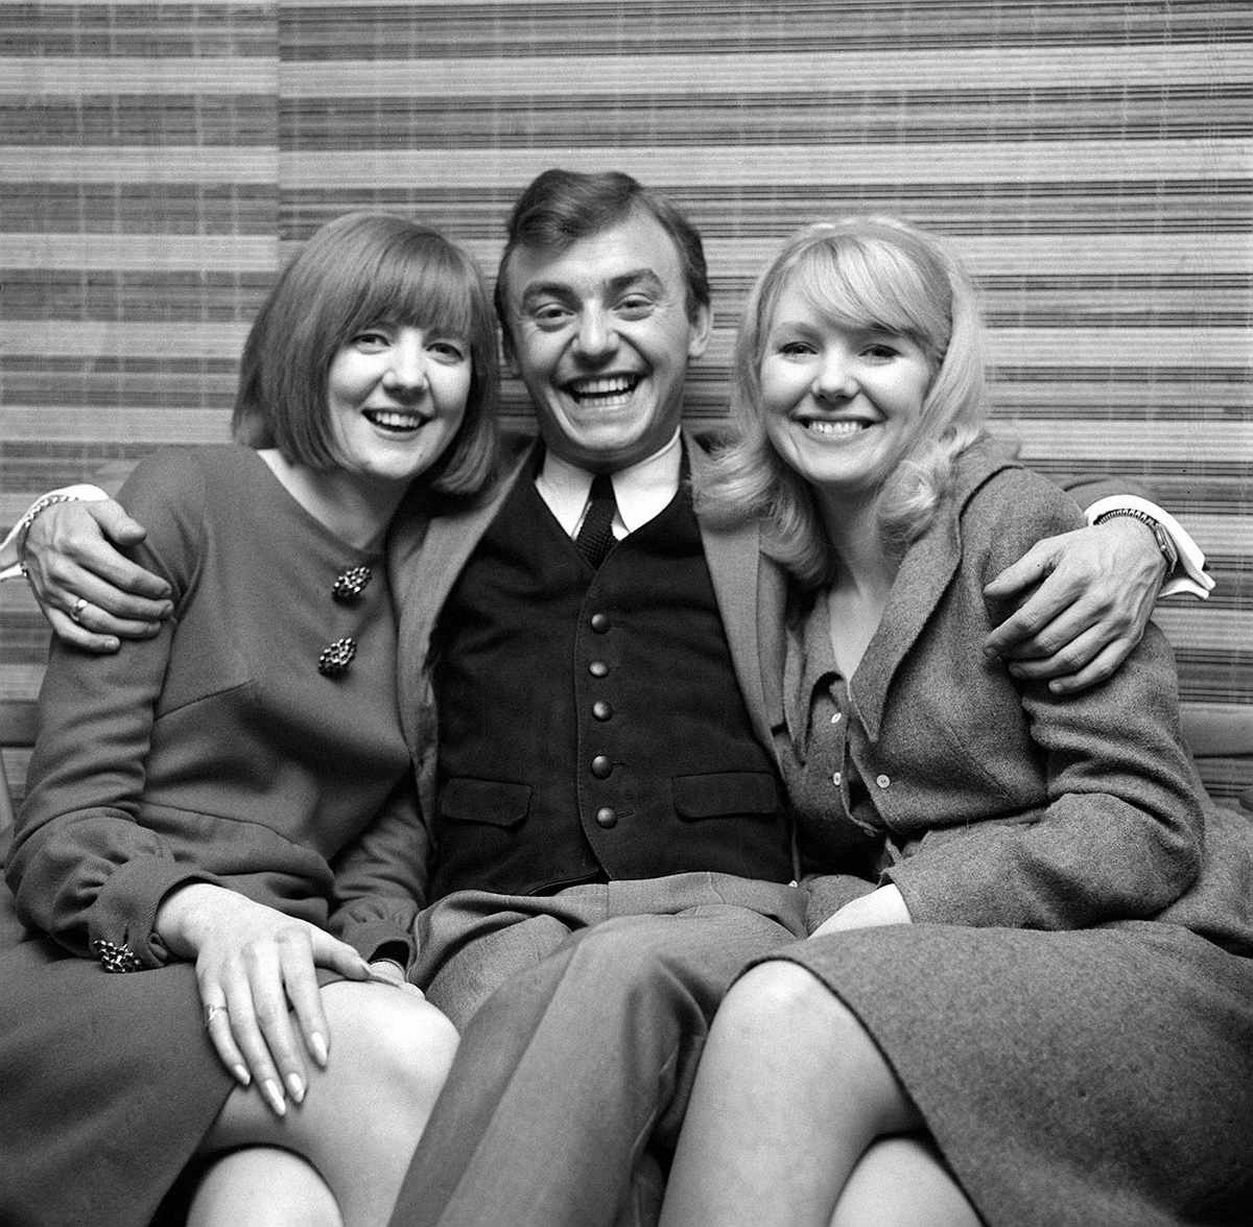 Gerry Marsden Cilla Black Julie Samuel Dec 1964. Gerry Marsden of Gerry and the Pacemakers sits with Cilla Black & Julie Samuel